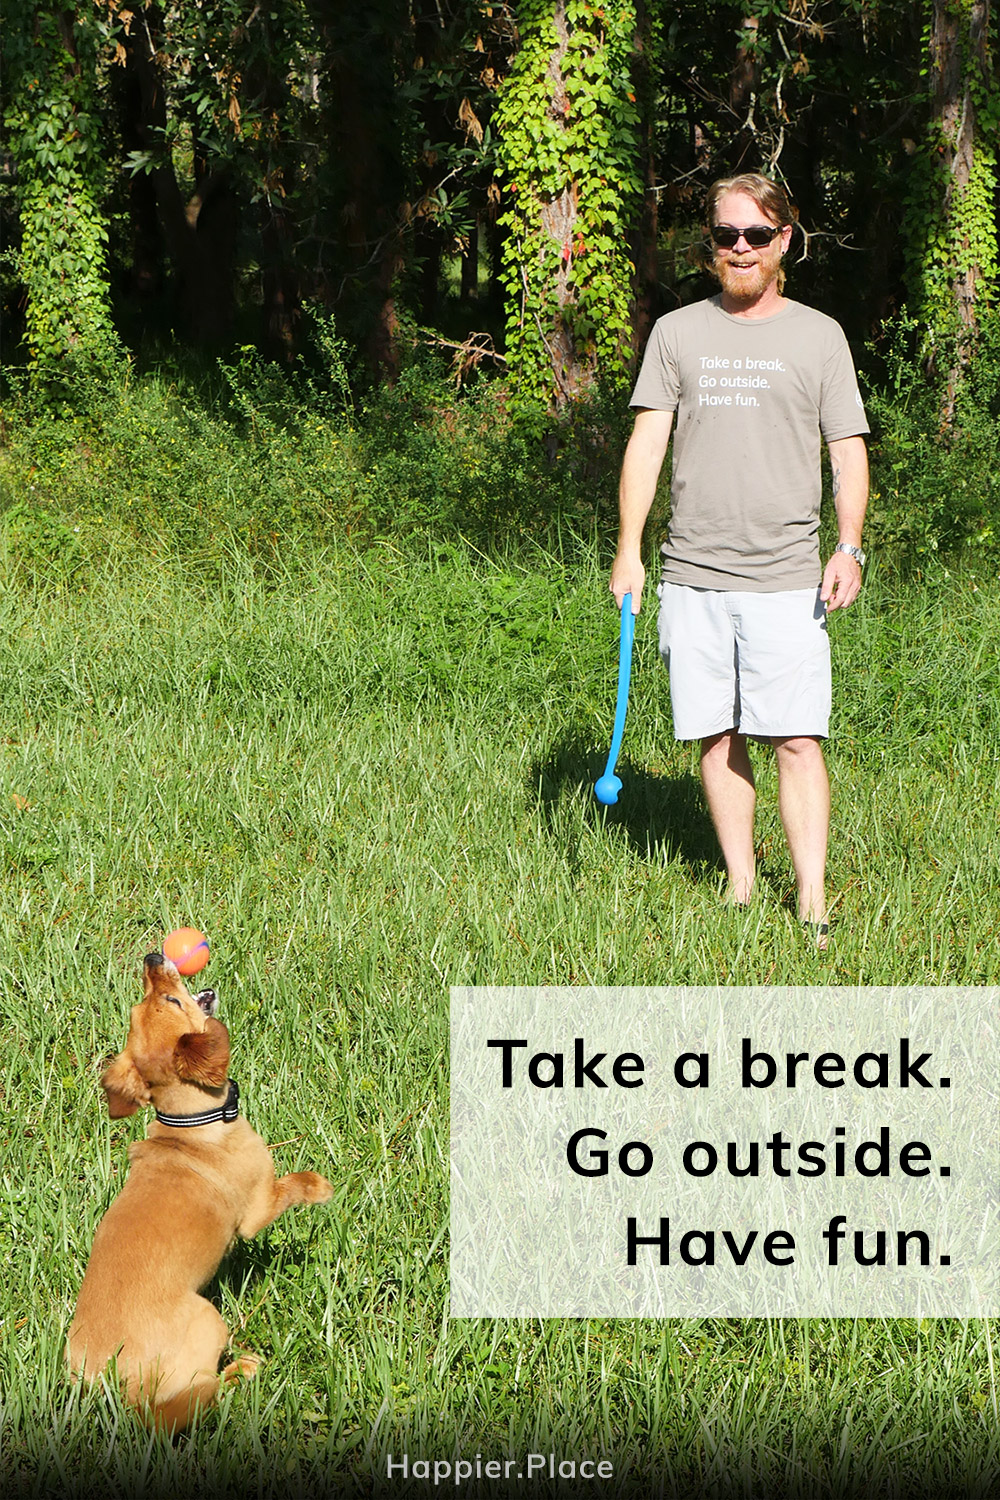 """Have More Fun in the """"Take a break. Go outside. Have fun."""" T-Shirt"""